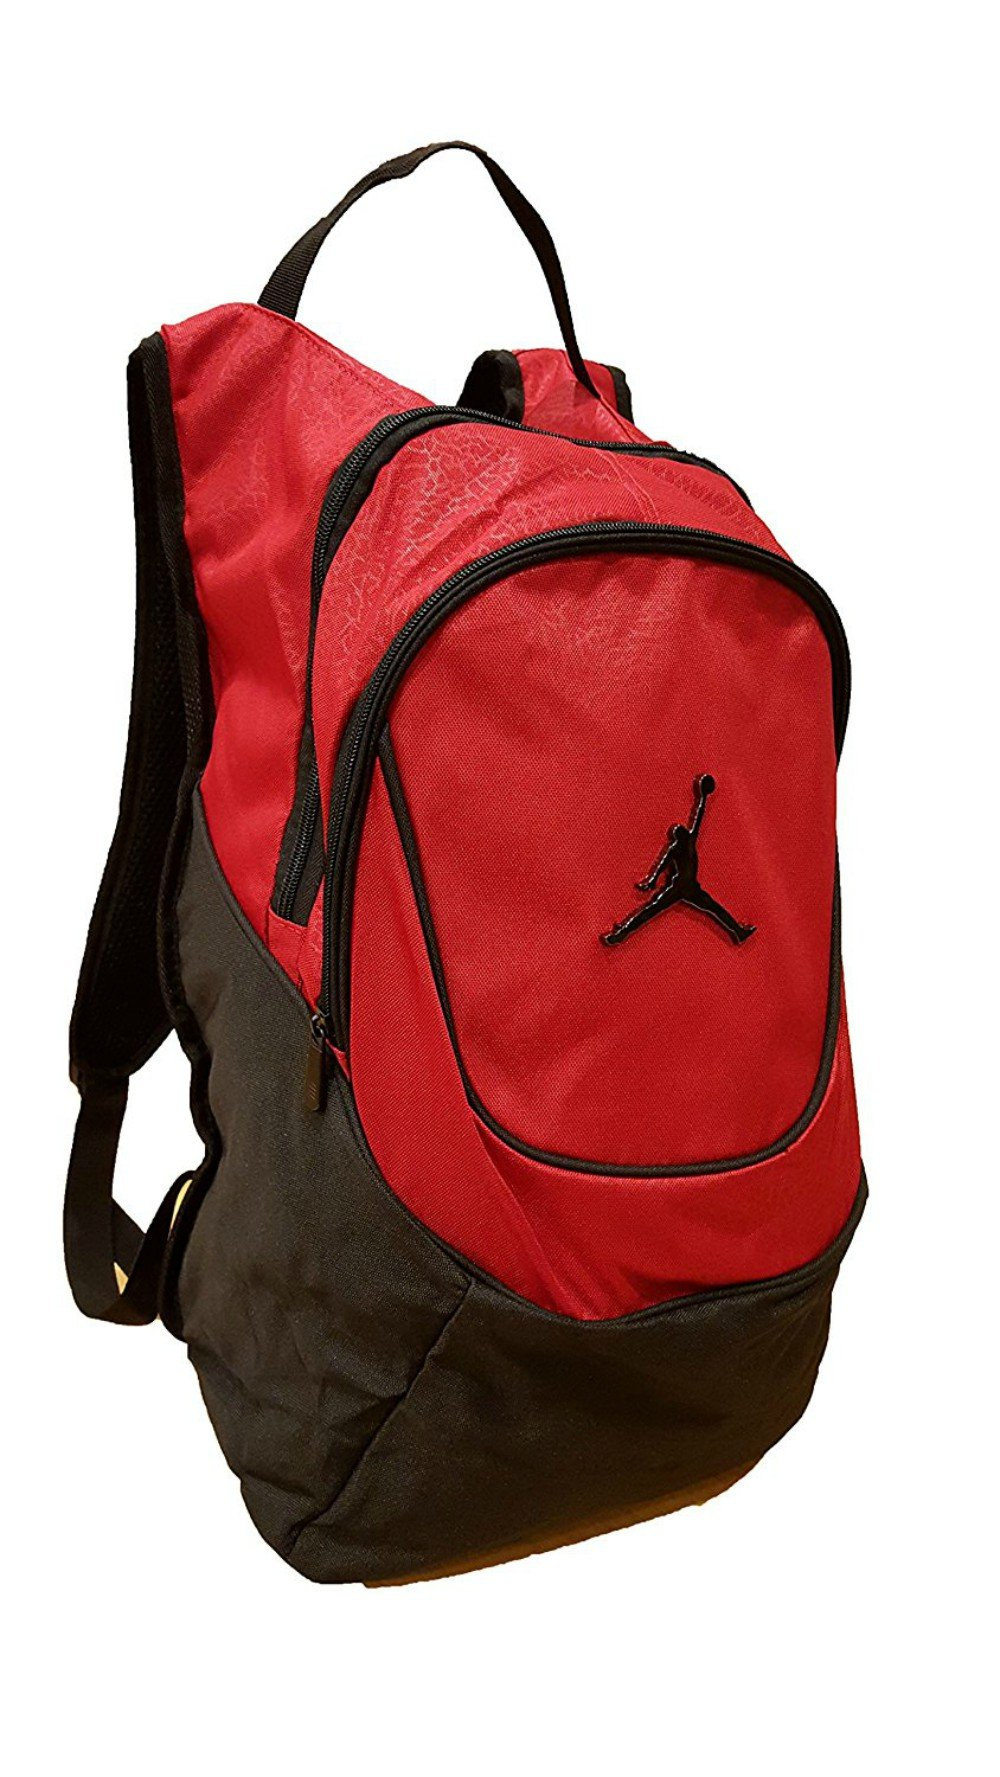 26582a6ced Get Quotations · Jordan Nike Air Jumpman Laptop Backpack Book Bag-Red  w FREE Cell Phone Anti